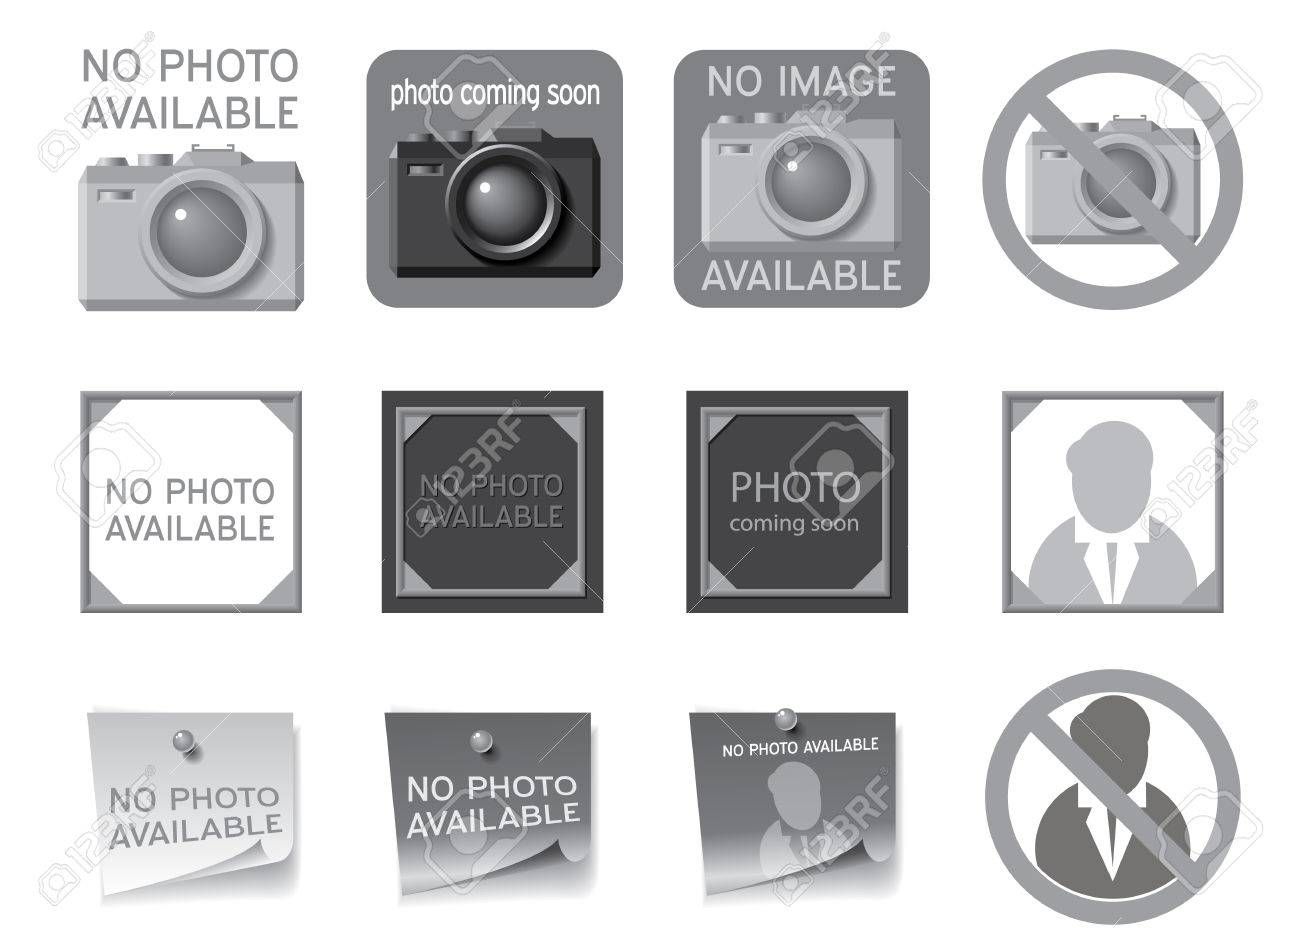 Icons to fill the seat of missing photos Vector illustration - 28010207